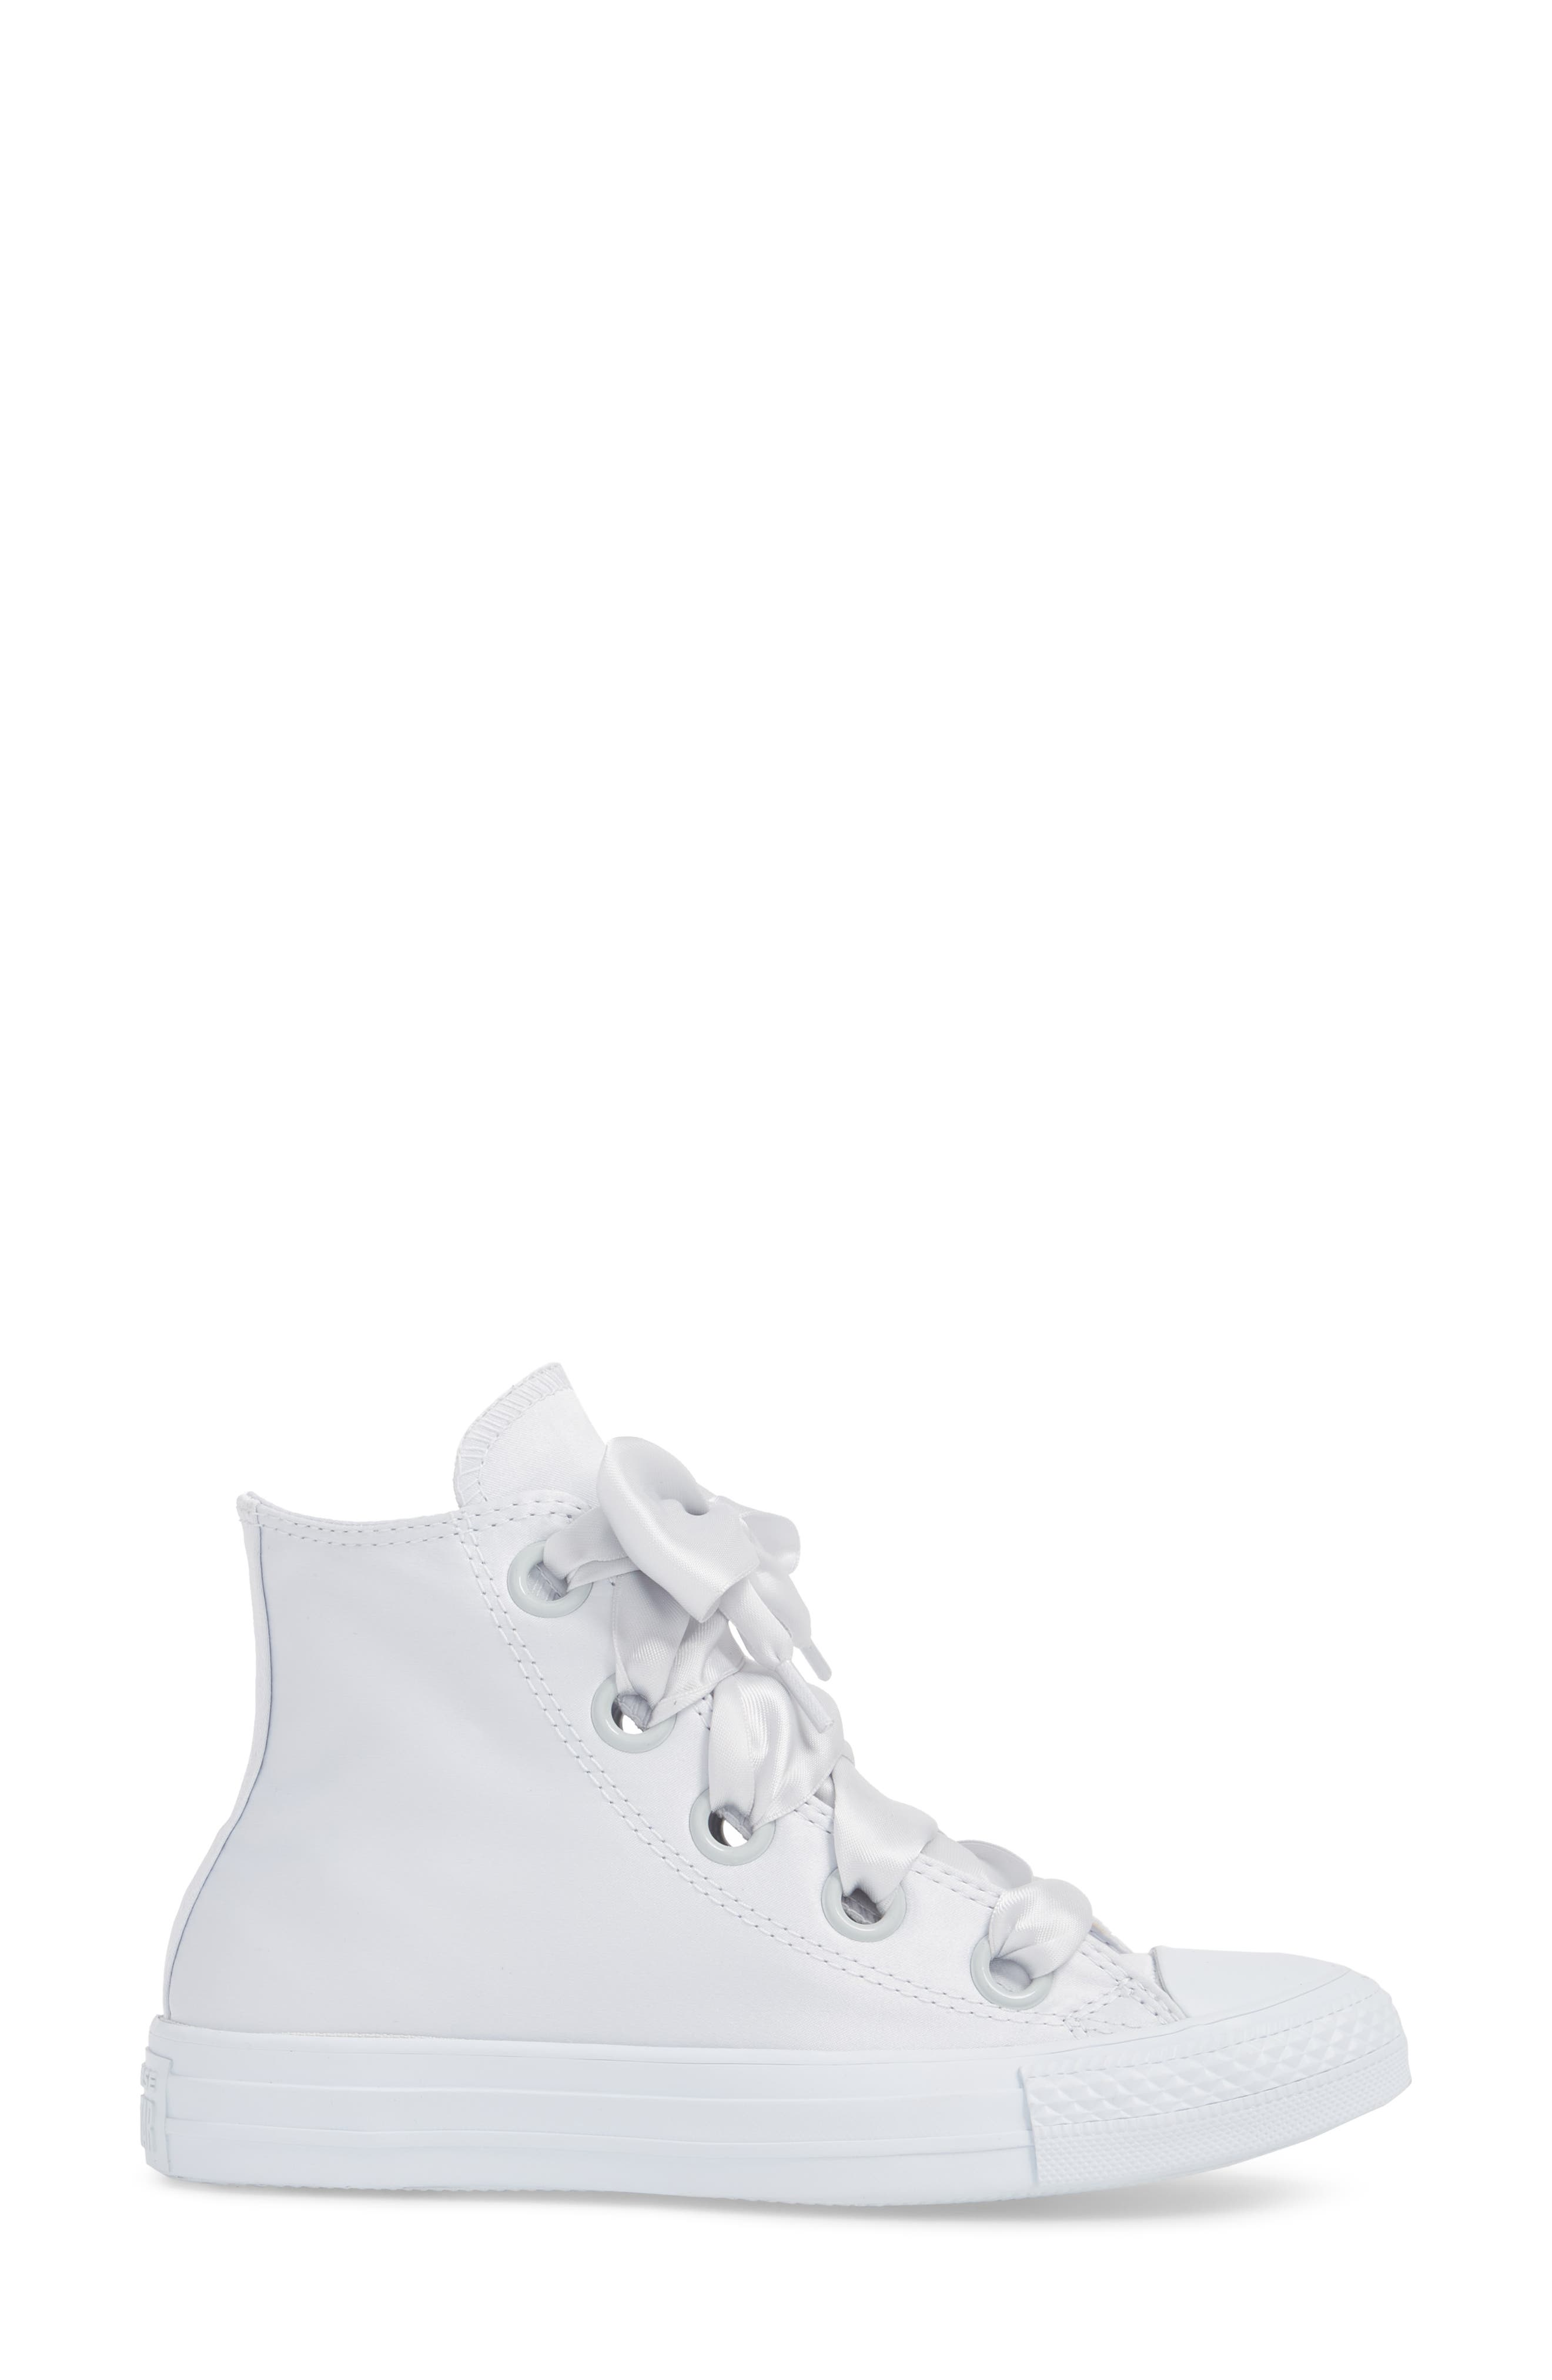 Chuck Taylor<sup>®</sup> All Star<sup>®</sup> Big Eyelet High Top Sneaker,                             Alternate thumbnail 3, color,                             040